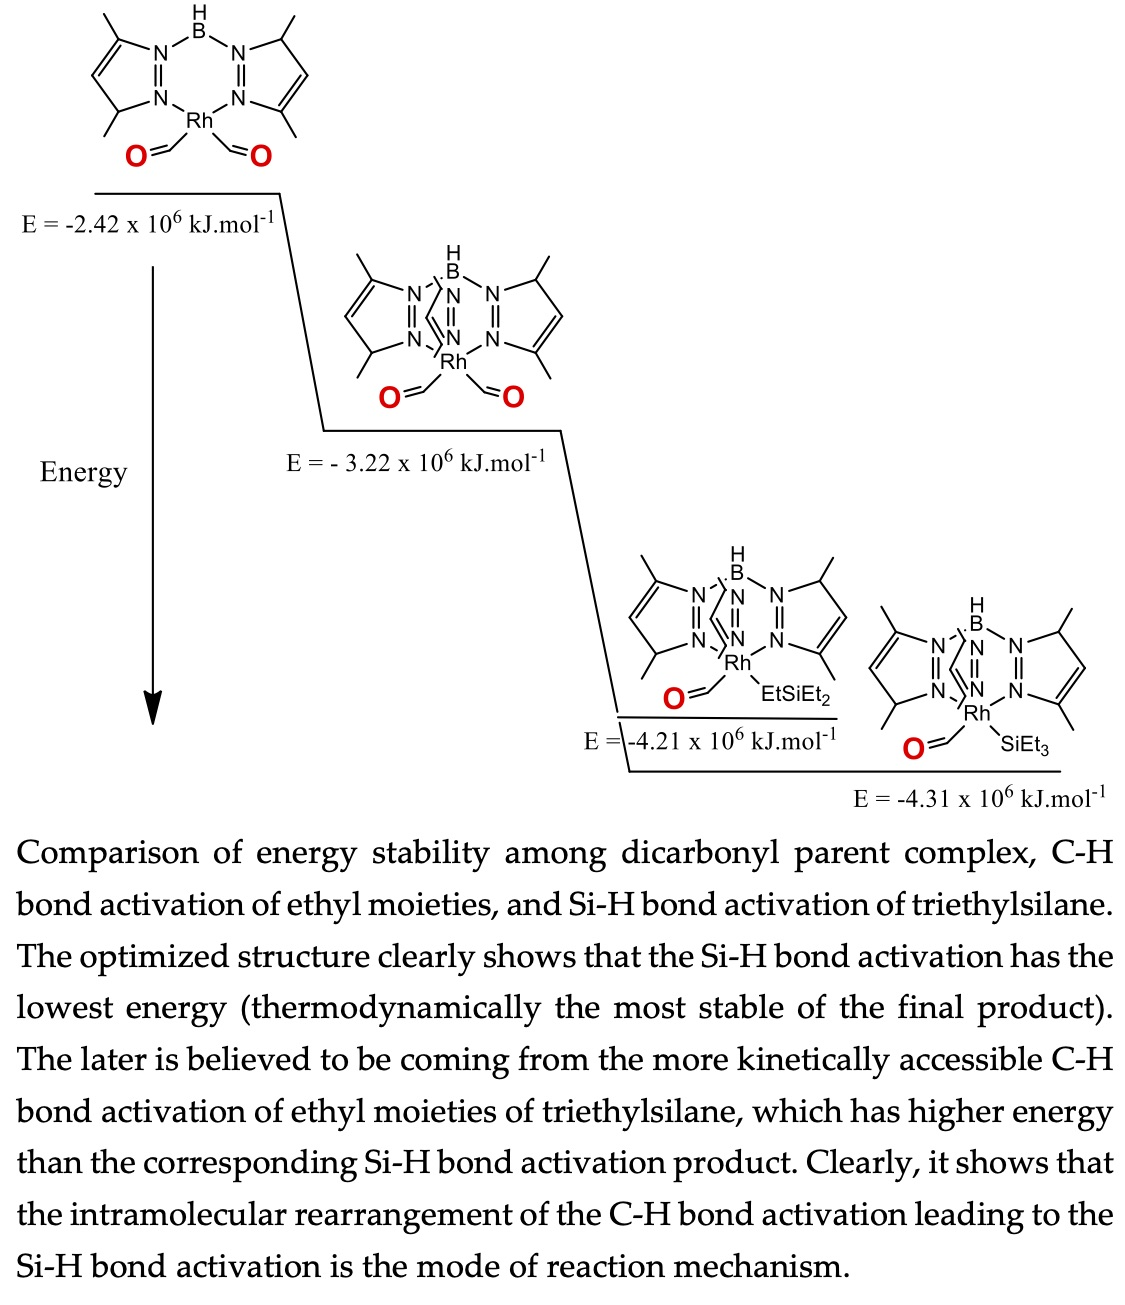 Comparison of energy stability among dicarbonyl parent complex, C-H bond activation of ethyl moieties, and Si-H bond activation of triethylsilane. The optimized structure clearly shows that the Si-H bond activation has the lowest energy (thermodynamically the most stable of the final product). The later is believed to be coming from the more kinetically accessible C-H bond activation of ethyl moieties of triethylsilane, which has higher energy than the corresponding Si-H bond activation product. Clearly, it shows that the intramolecular rearrangement of the C-H bond activation leading to the Si-H bond activation is the mode of reaction mechanism.